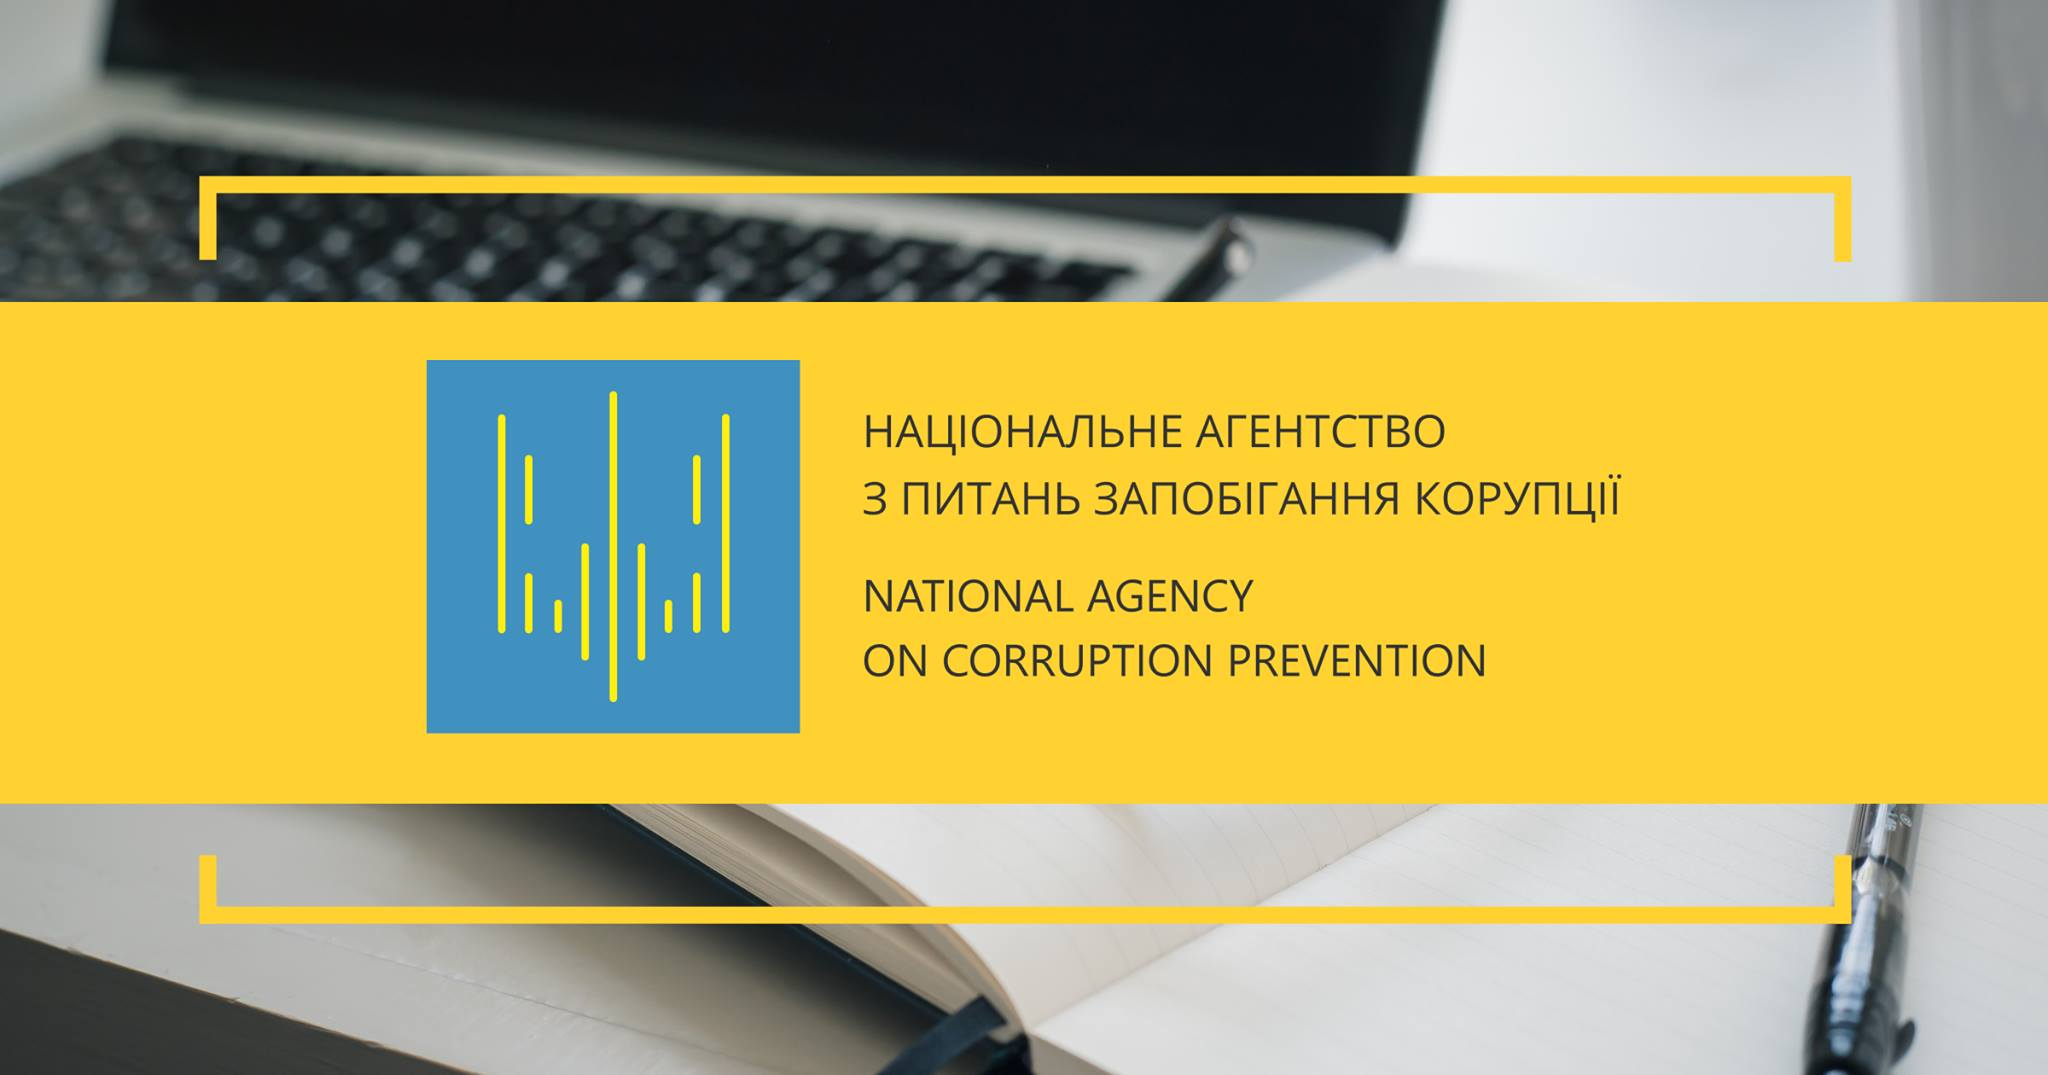 https://nazk.gov.ua/wp-content/uploads/2019/07/59755995_2255196664540245_6156047573921562624_o.jpg